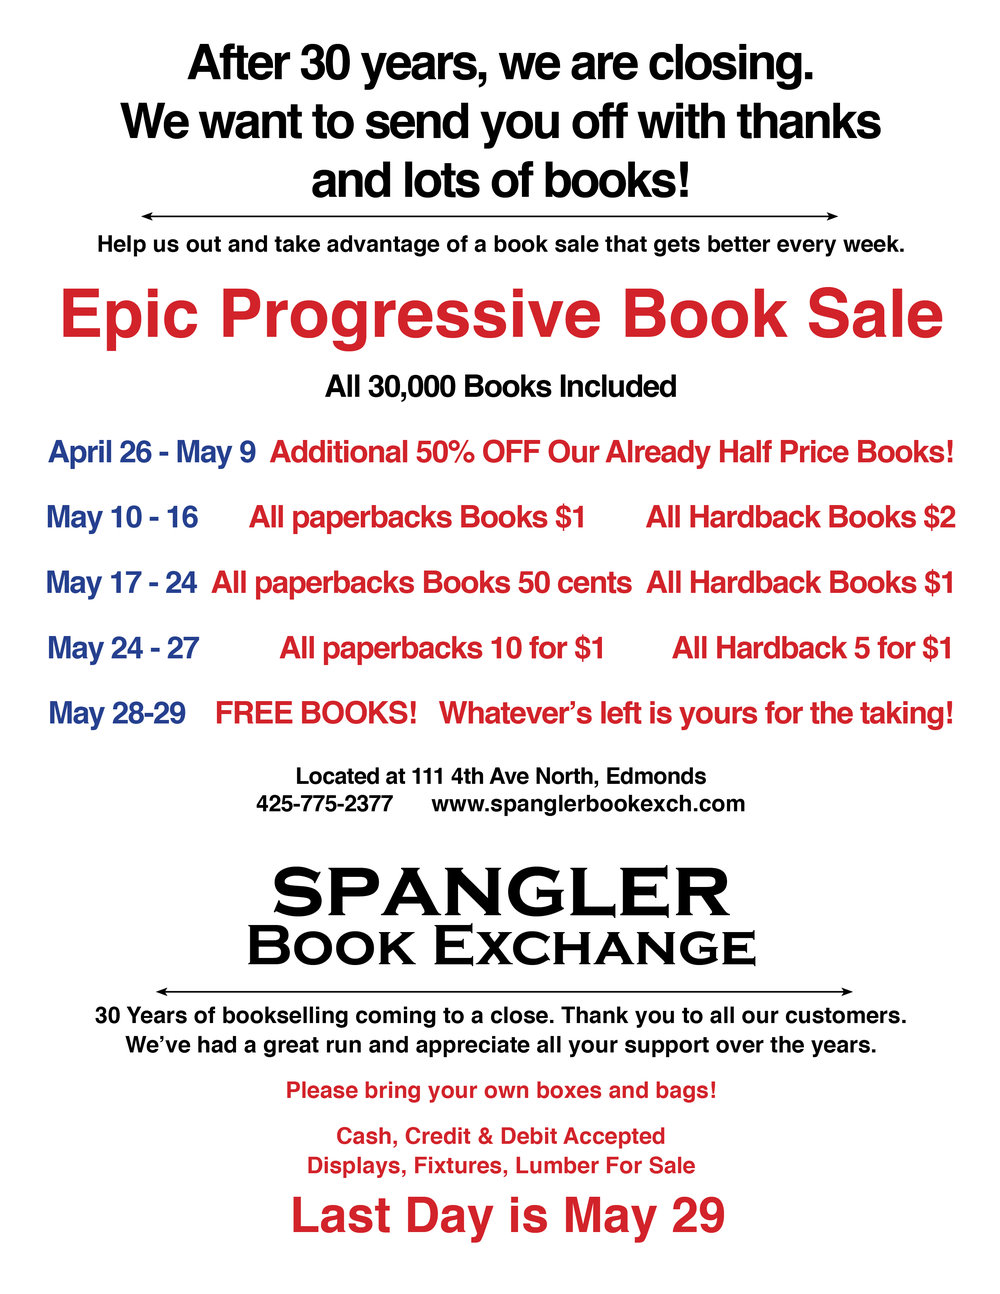 Spangler Epic Closing Sale 1 Page.jpg